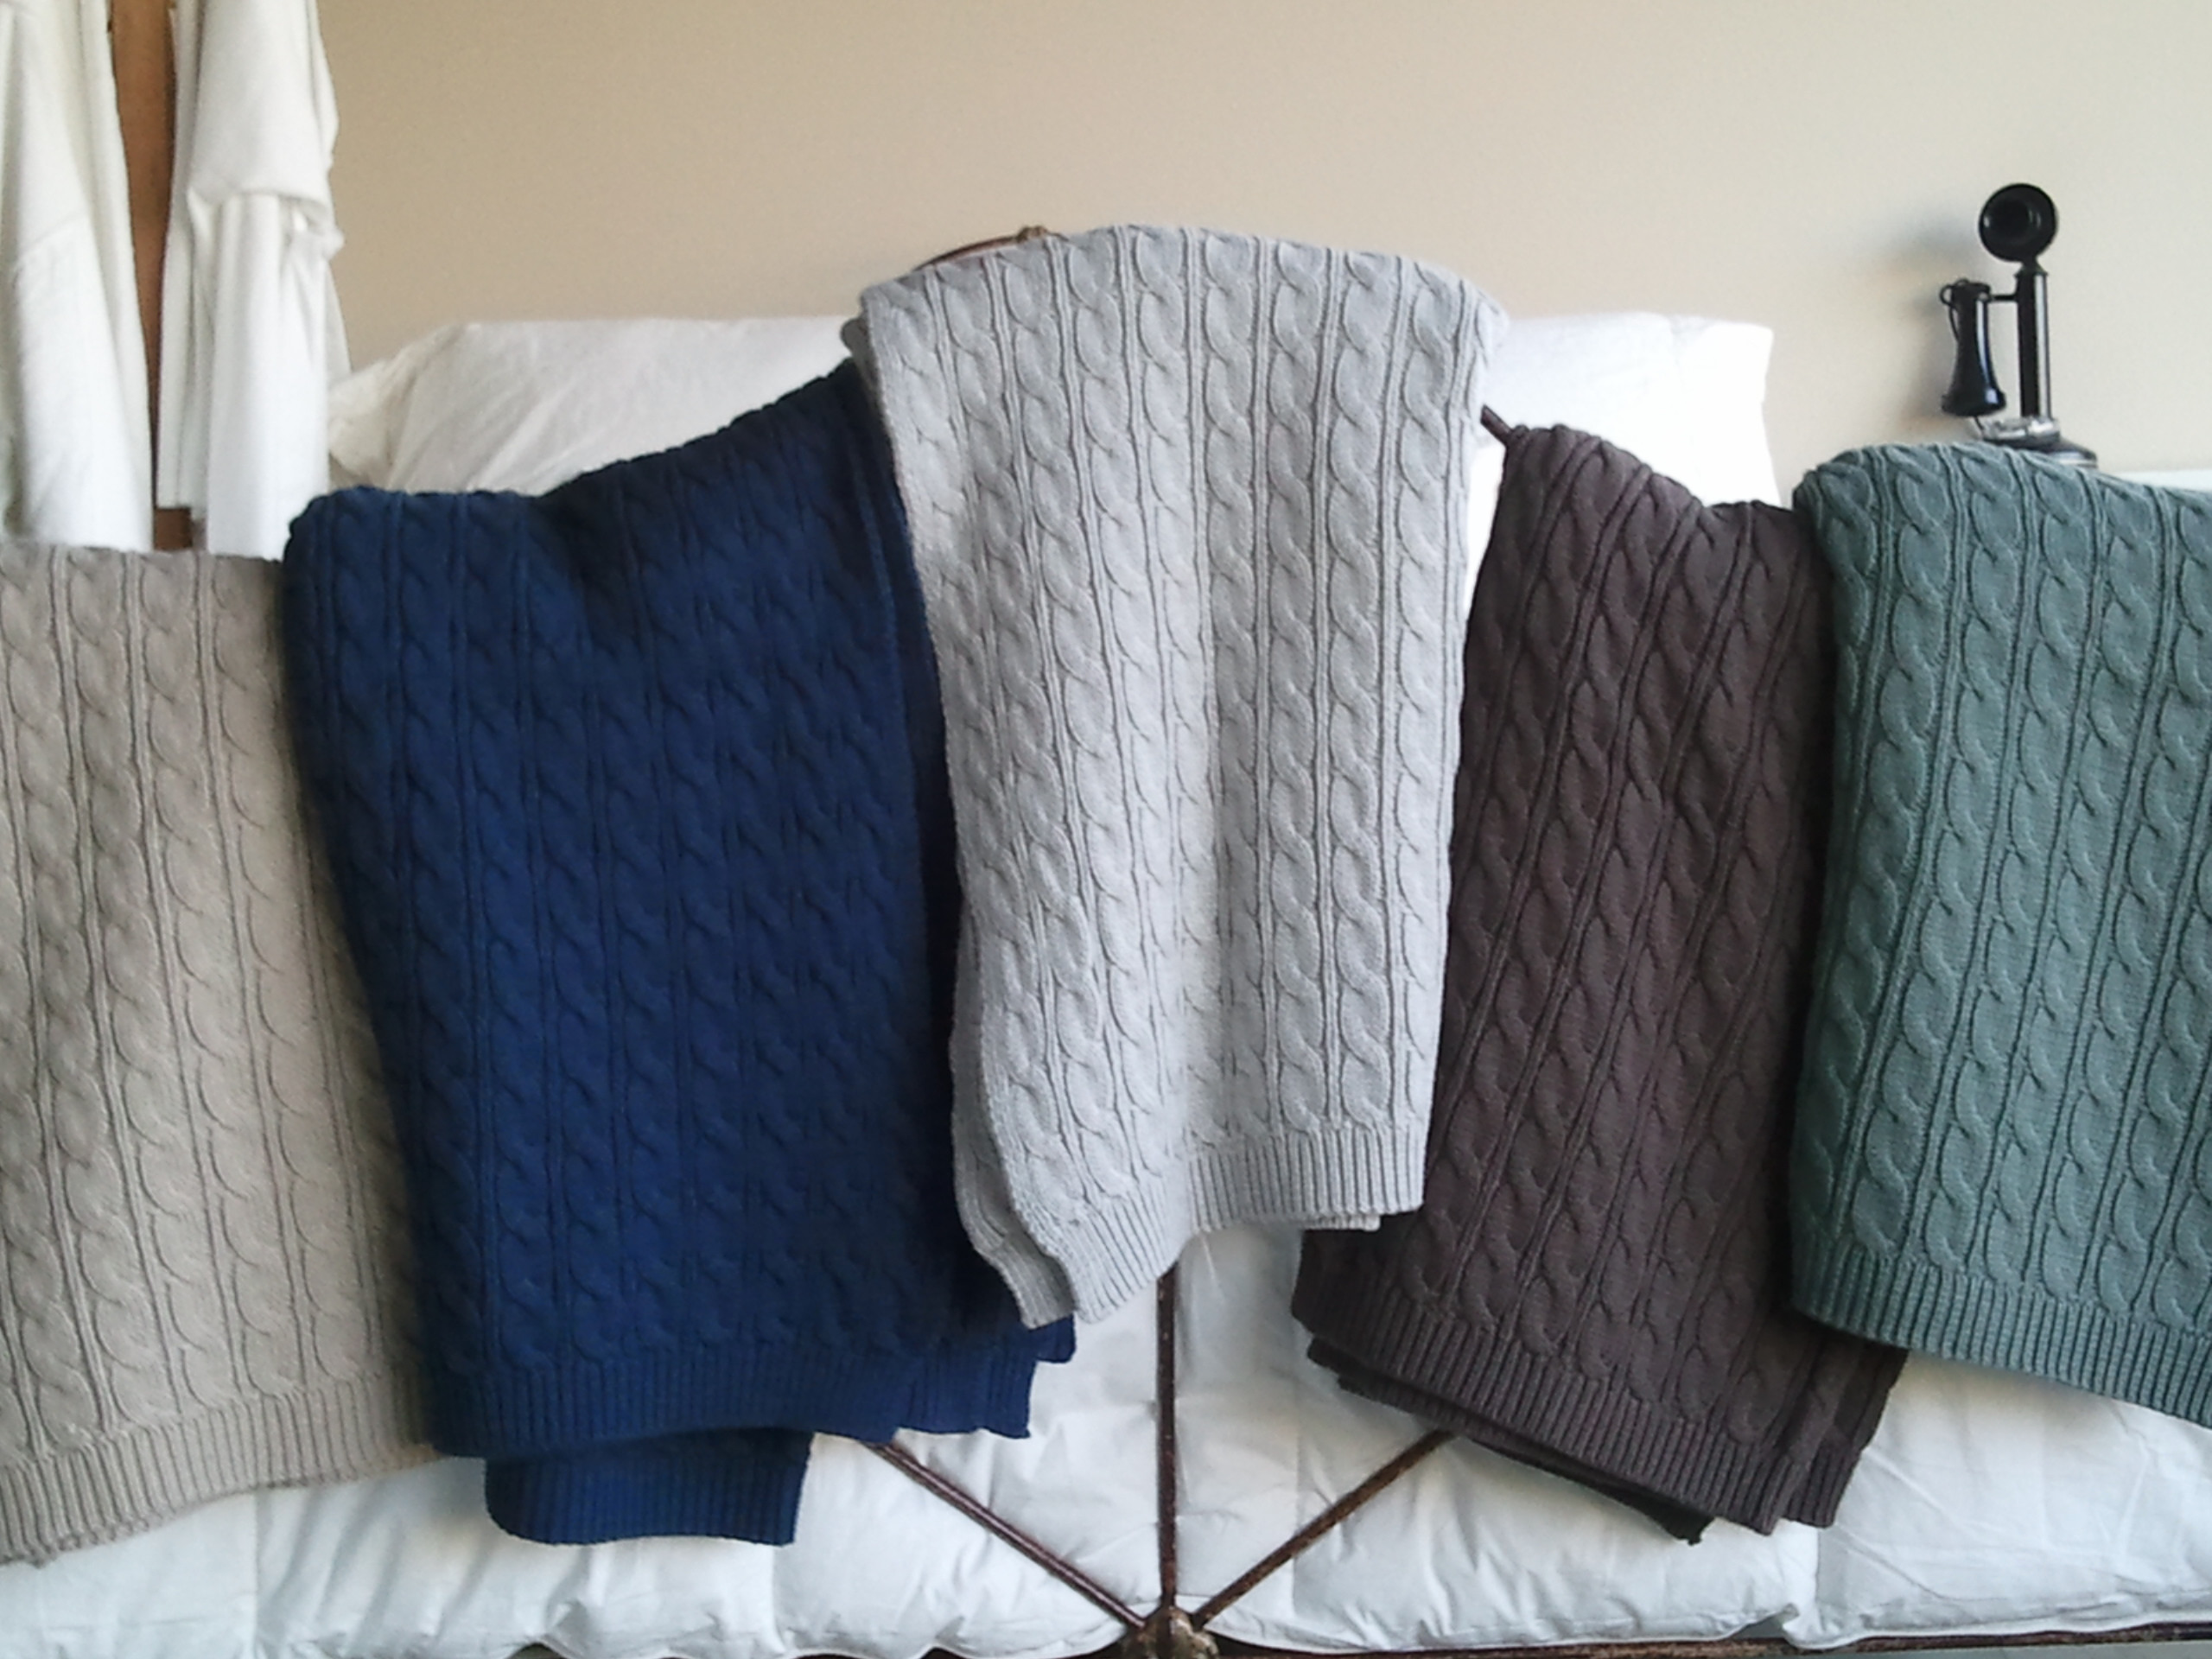 Knit Throw Blanket Inspirational Cable Knit Throws Of New 48 Pictures Knit Throw Blanket